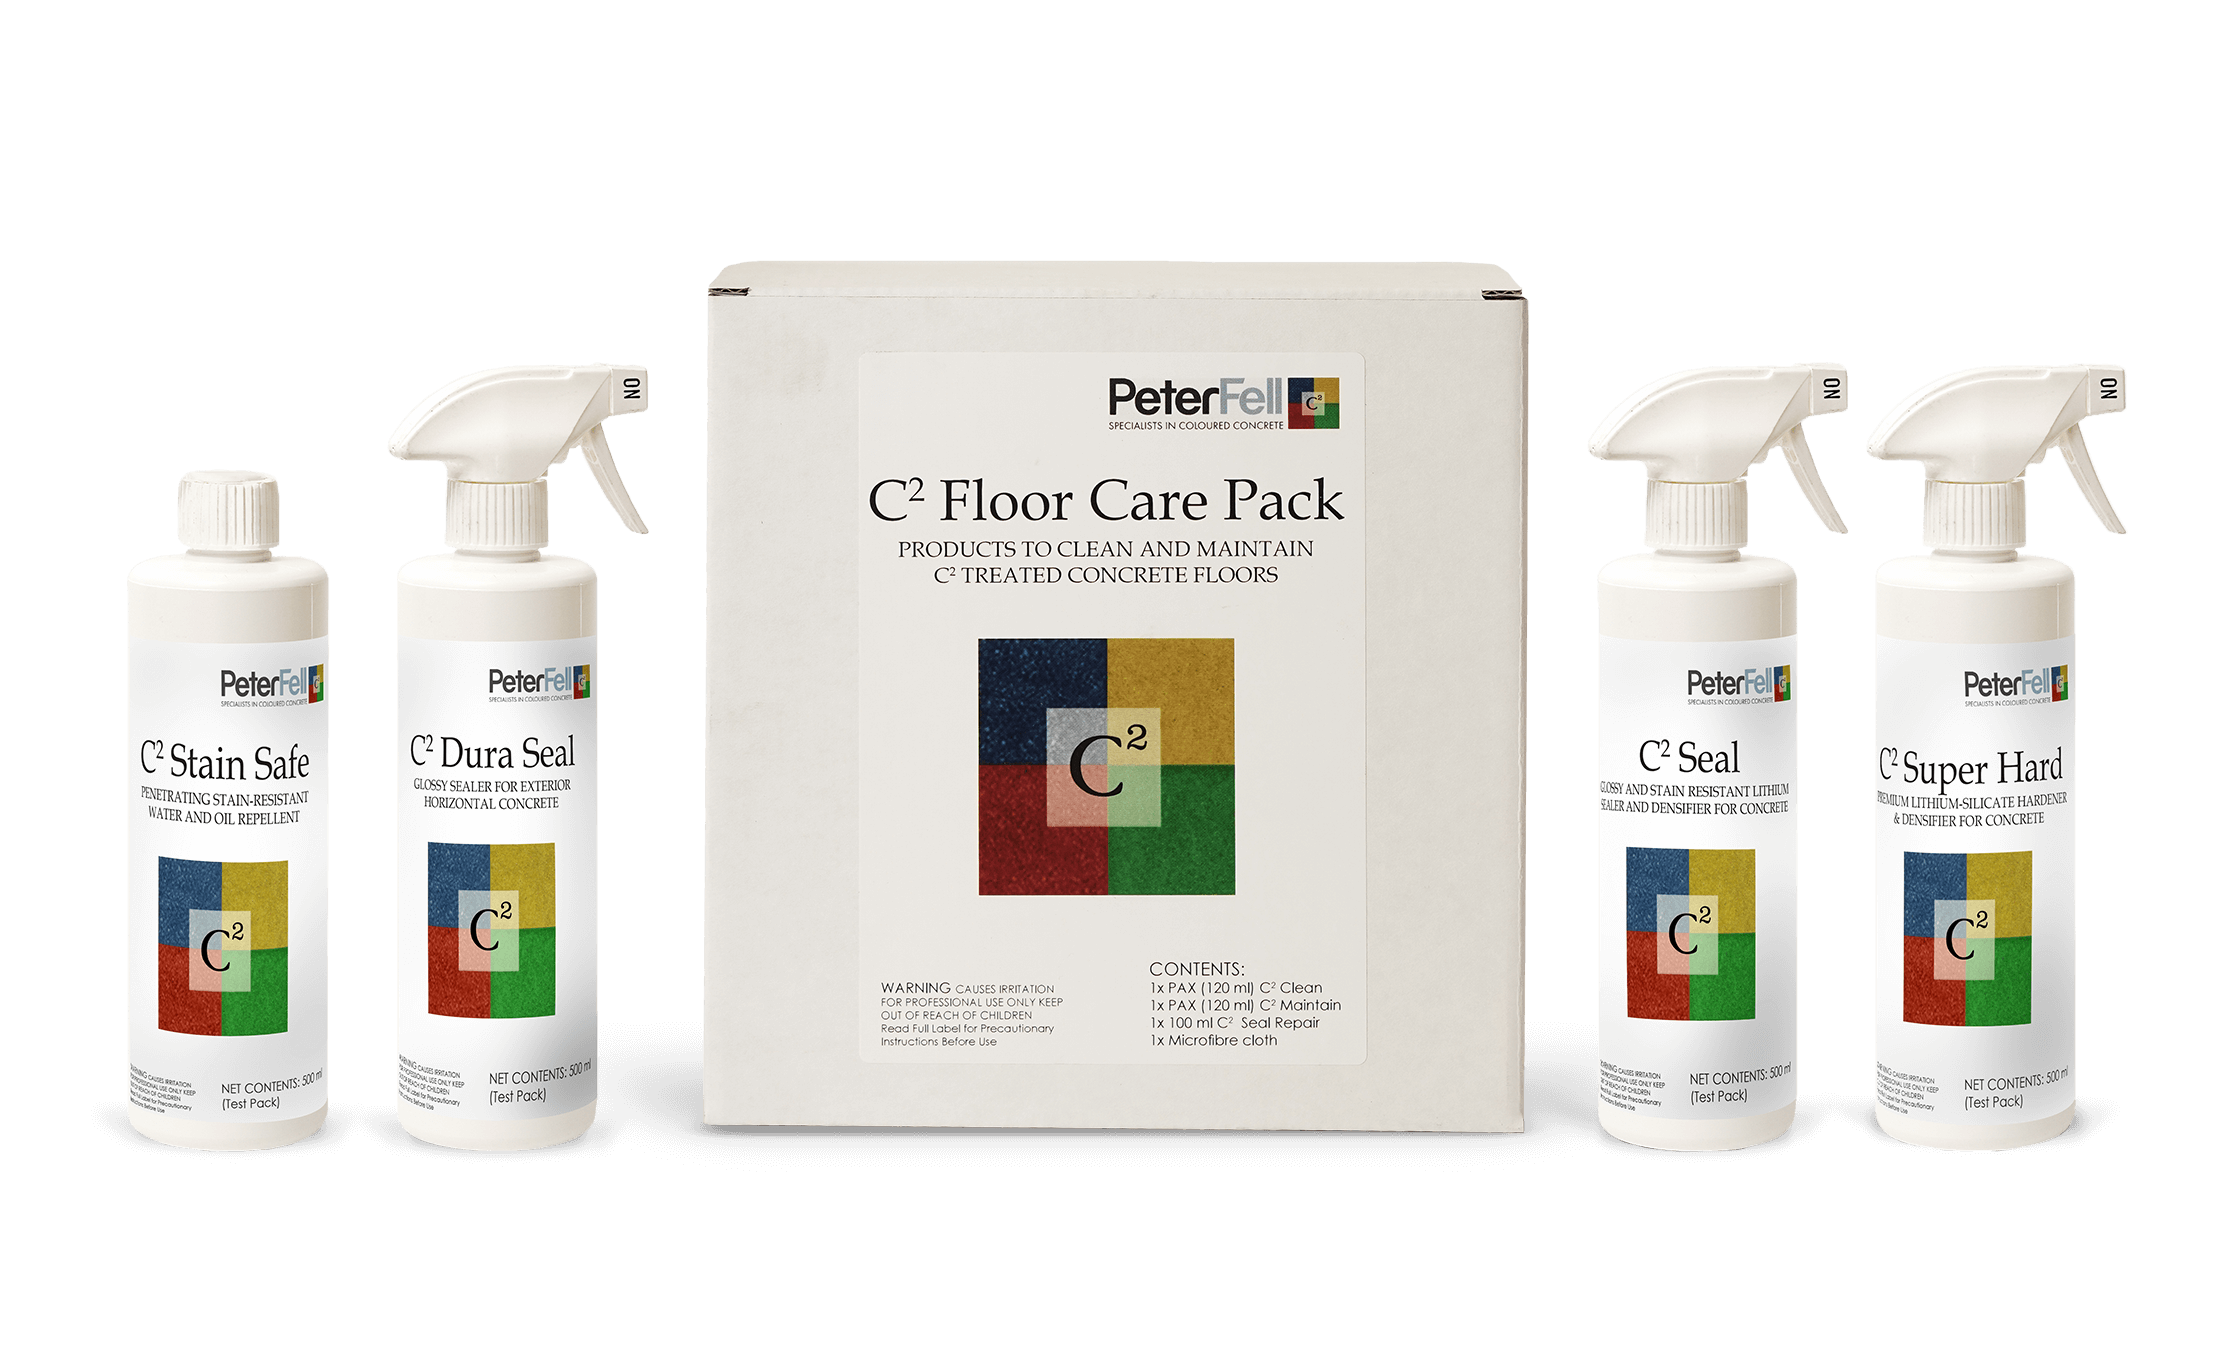 C2 floor care pack to look after your C2 polished concrete floor